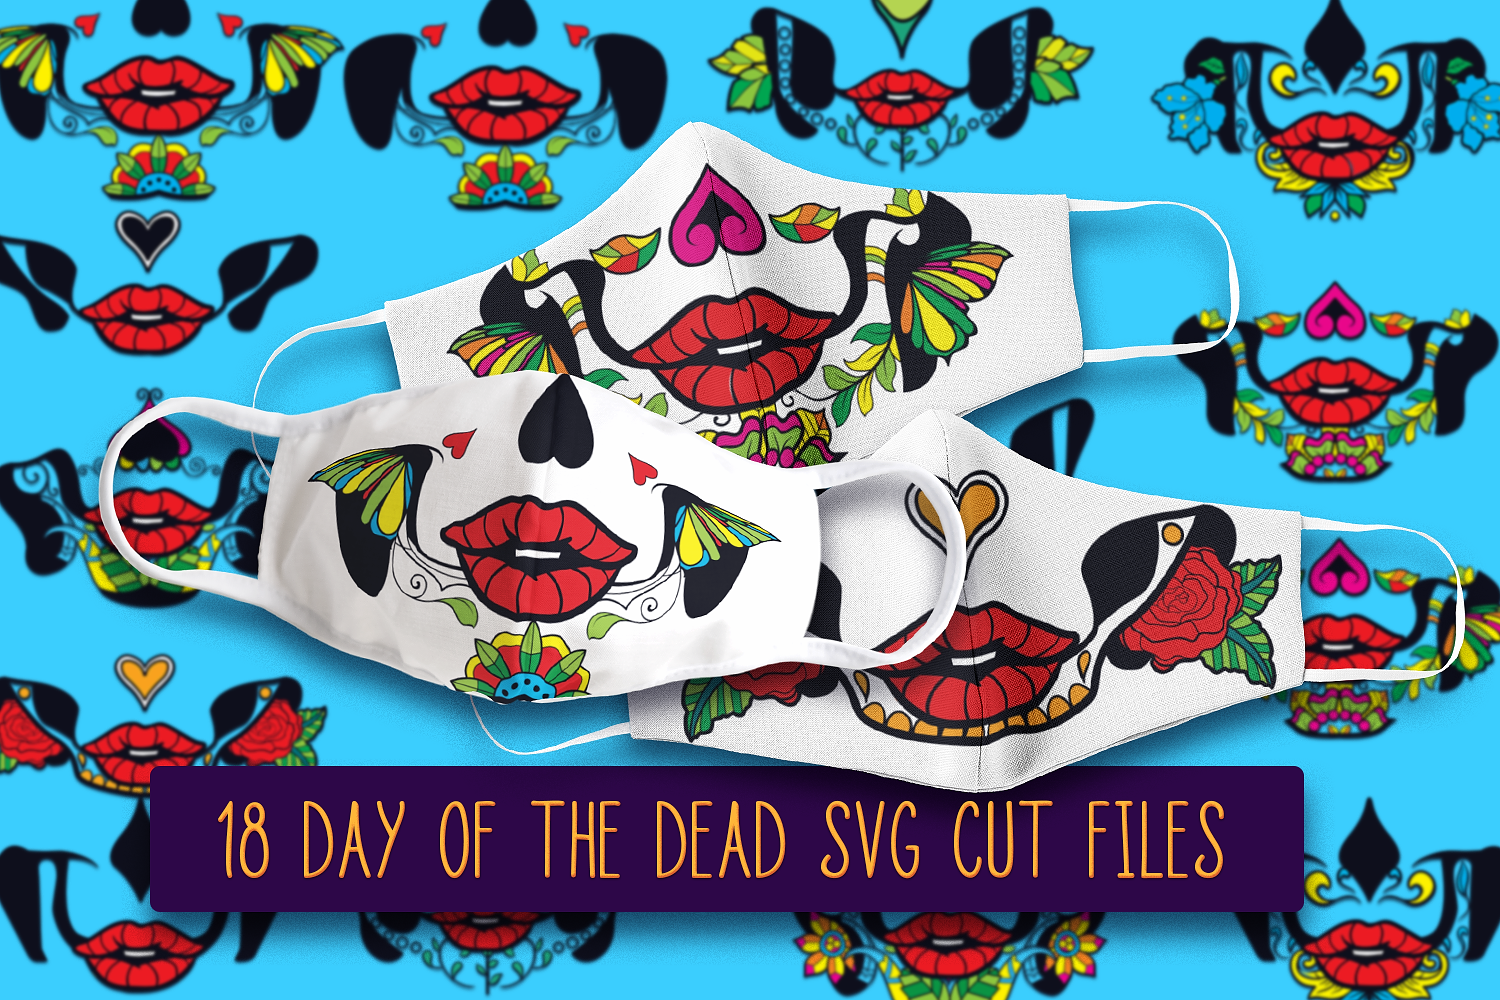 Svg File Free Mask Svg Download Free And Premium Psd Mockup Templates And Design Assets